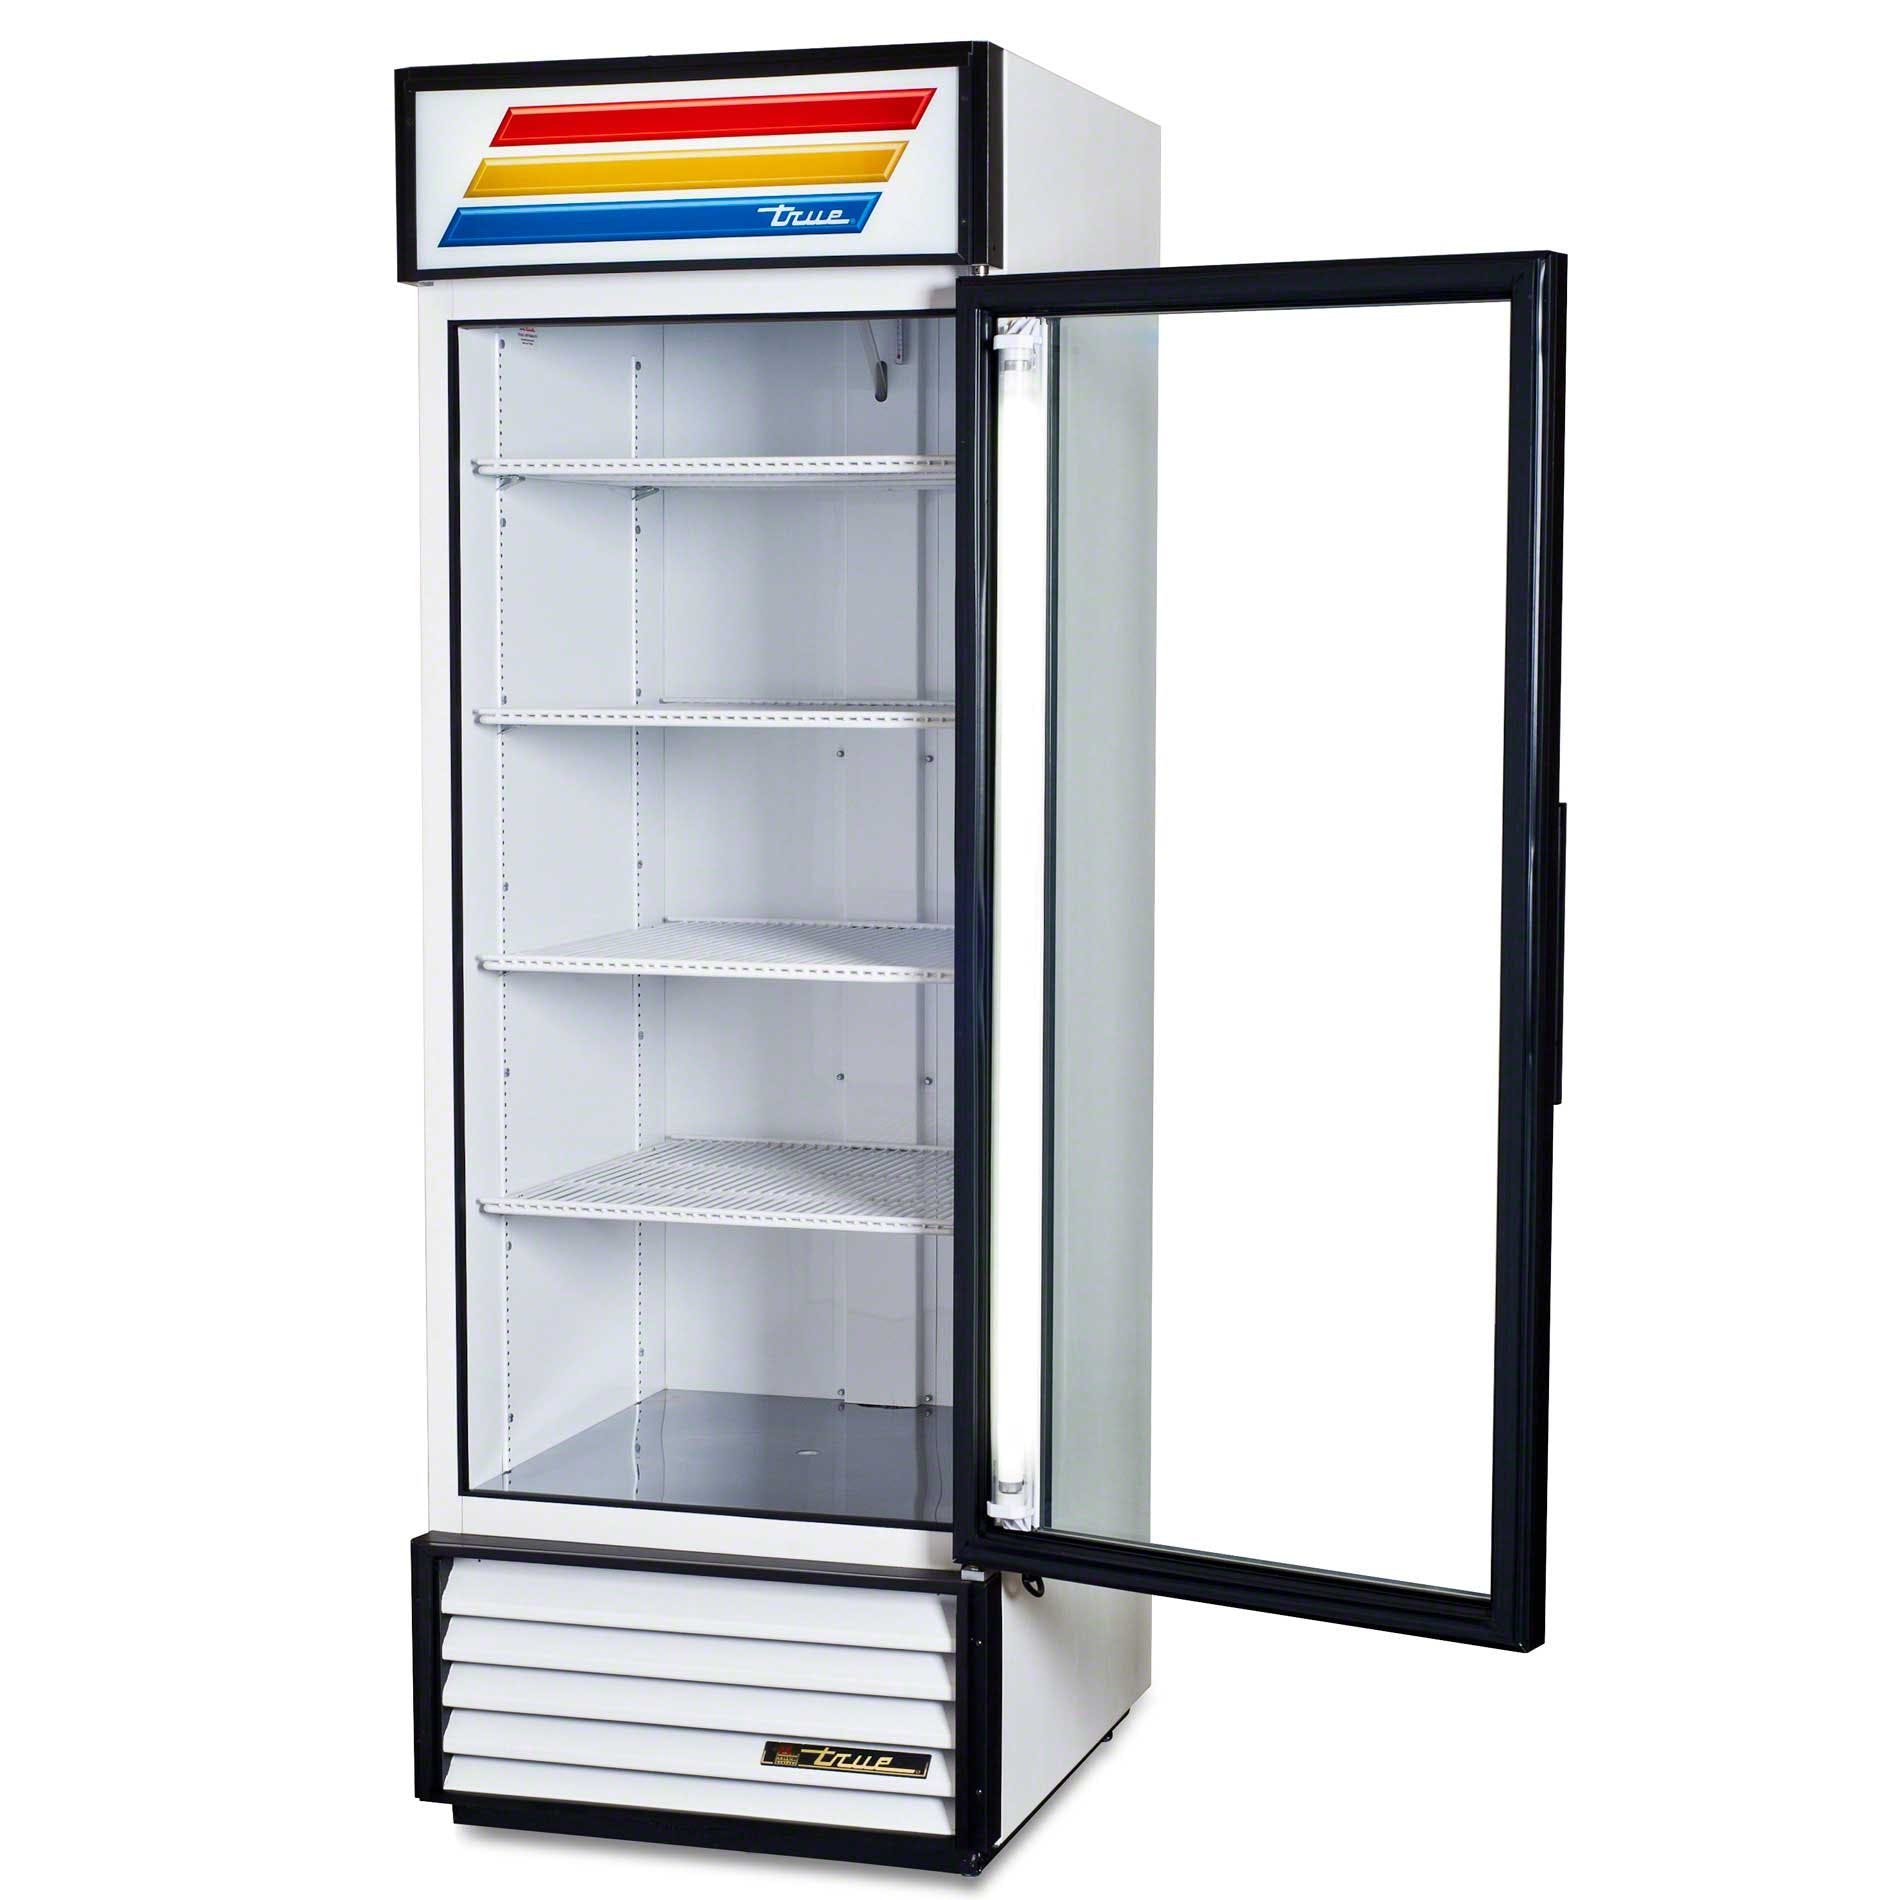 "True - GDM-23 27"" Swing Glass Door Merchandiser Refrigerator Commercial refrigerator sold by Food Service Warehouse"